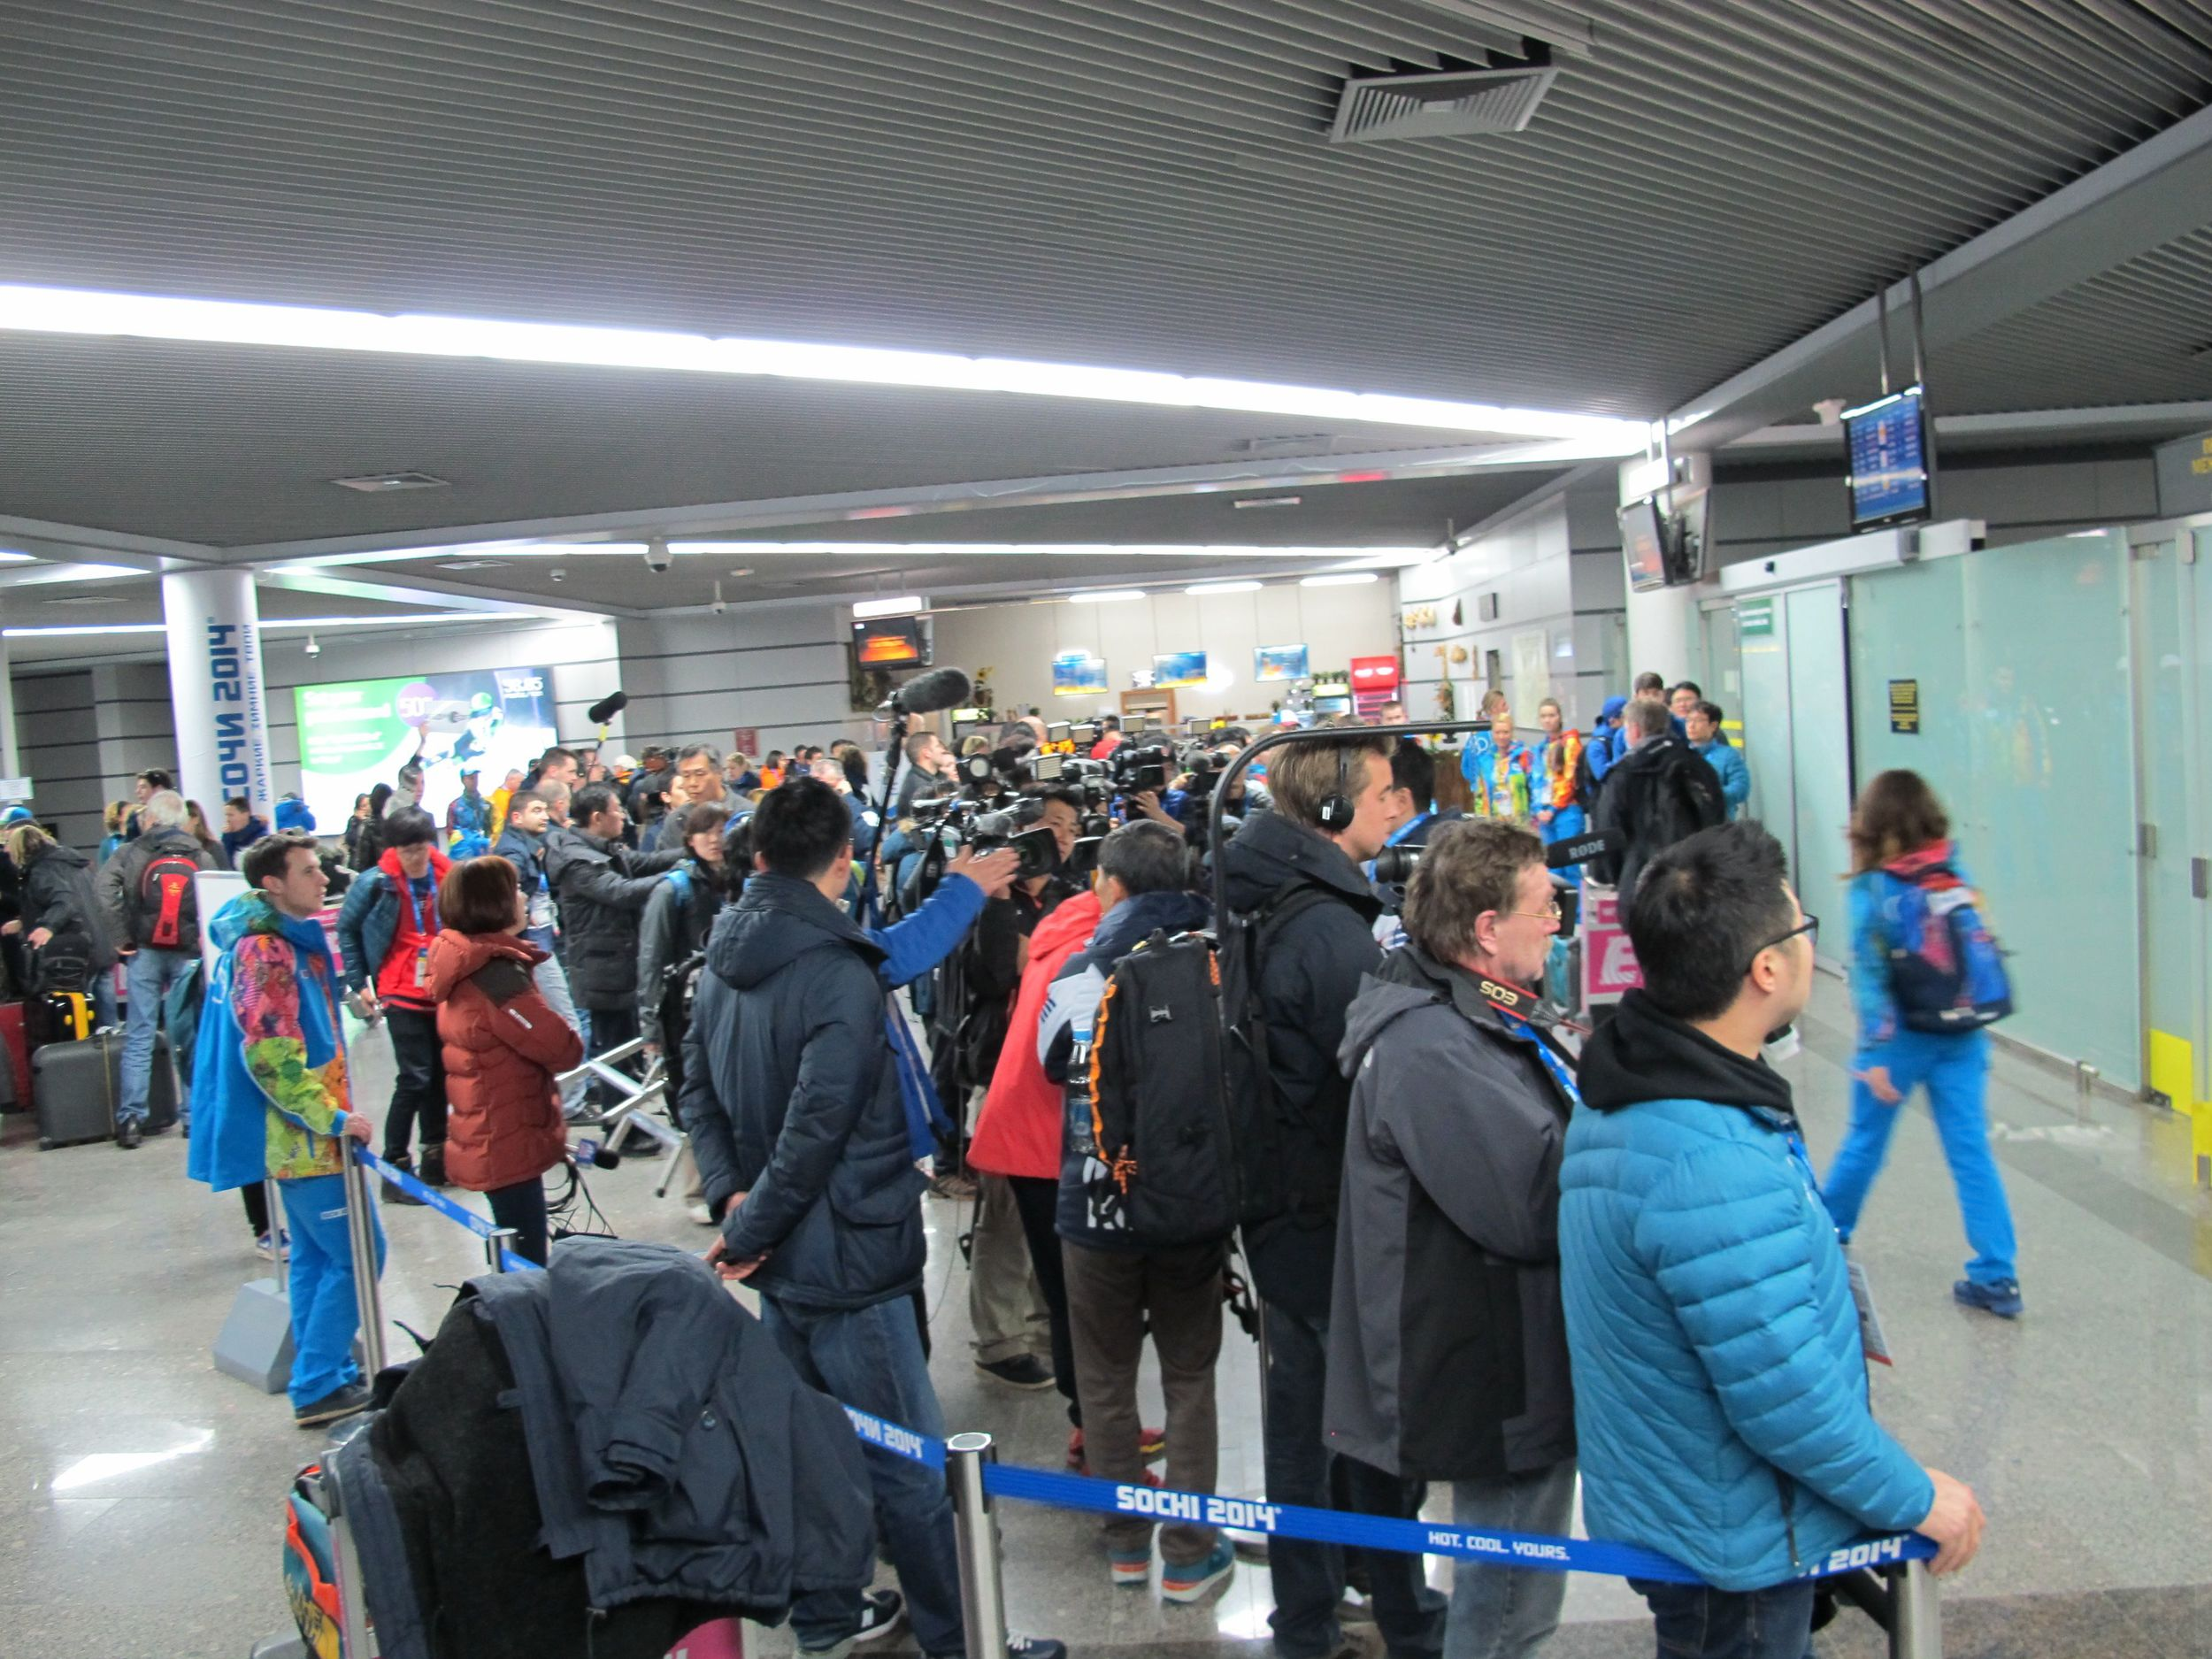 At the Sochi airport, TV crews greeted arriving athletes.